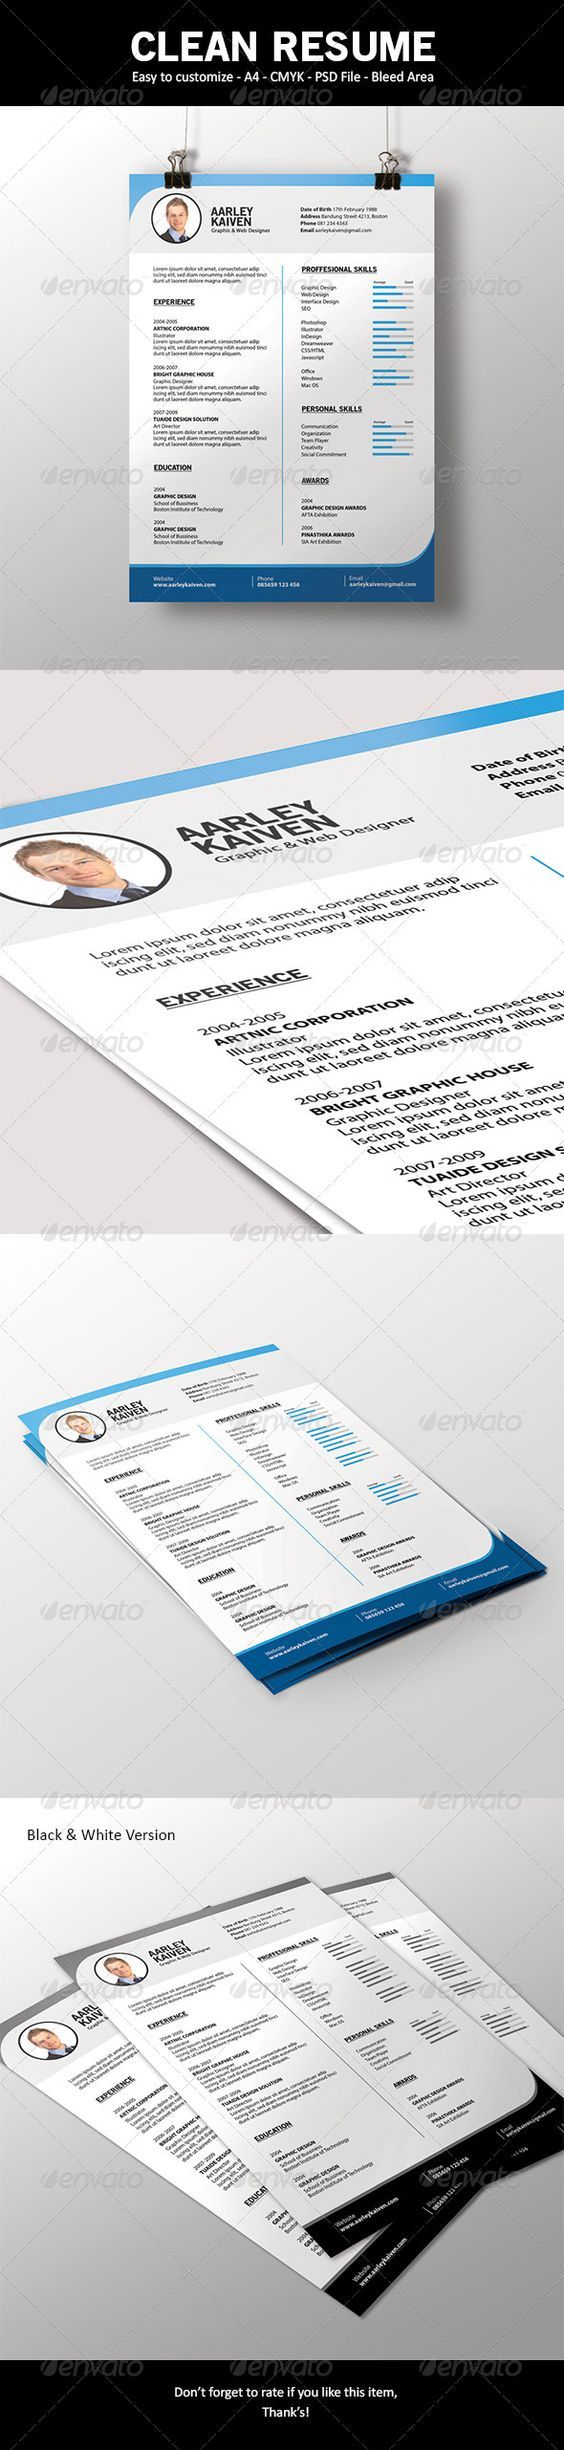 48 best Professional Life: CVs & Resumés images on Pinterest ...